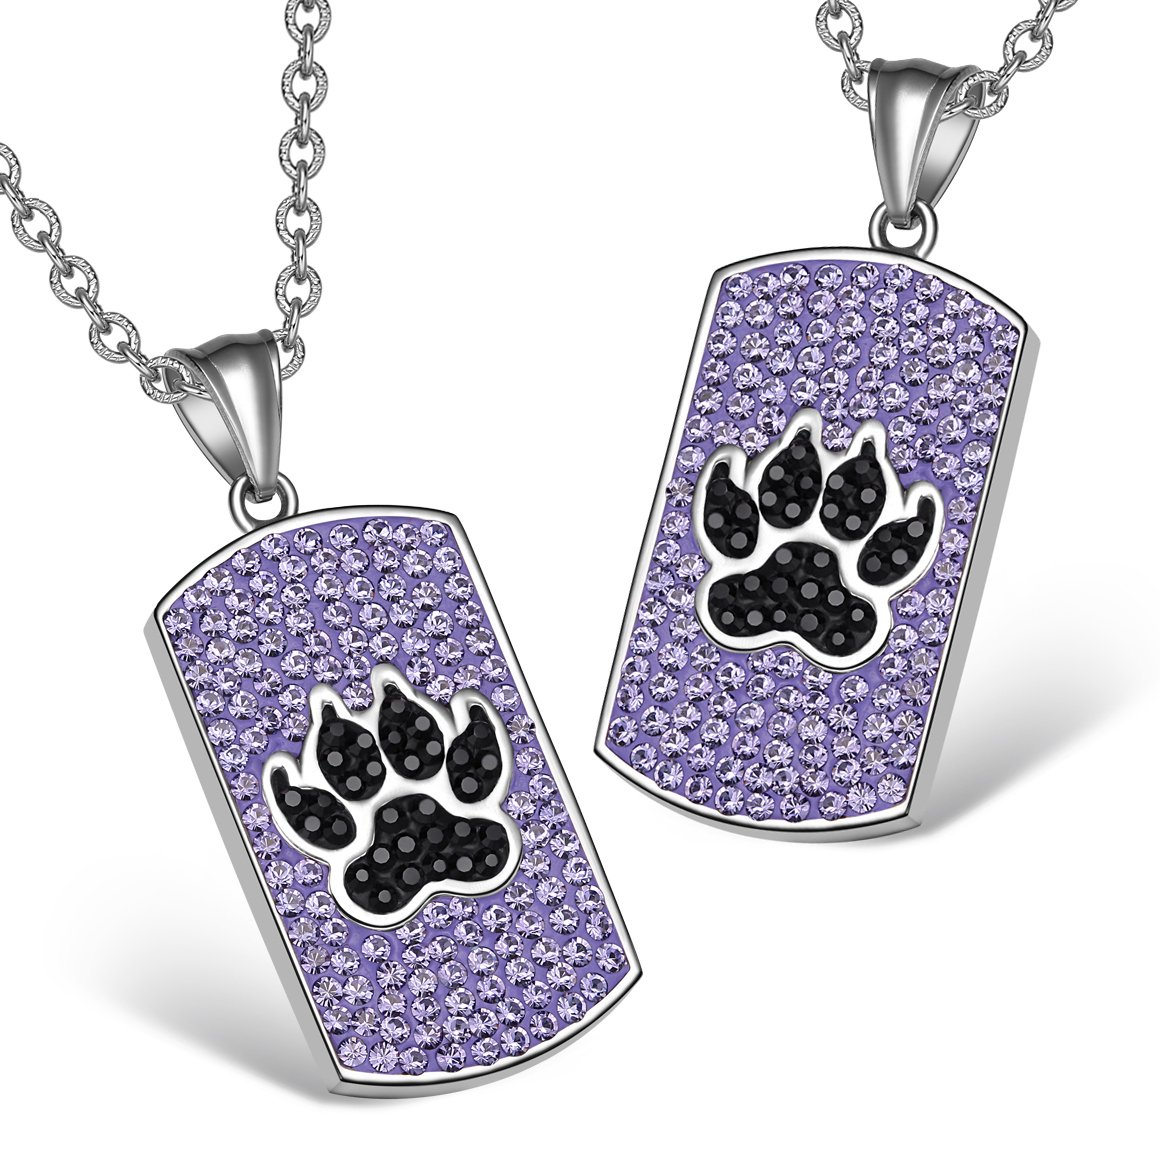 Wolf Paw Austrian Crystal Love Couples or Best Friends Dog Tag Purple Jet Black Charm Necklaces